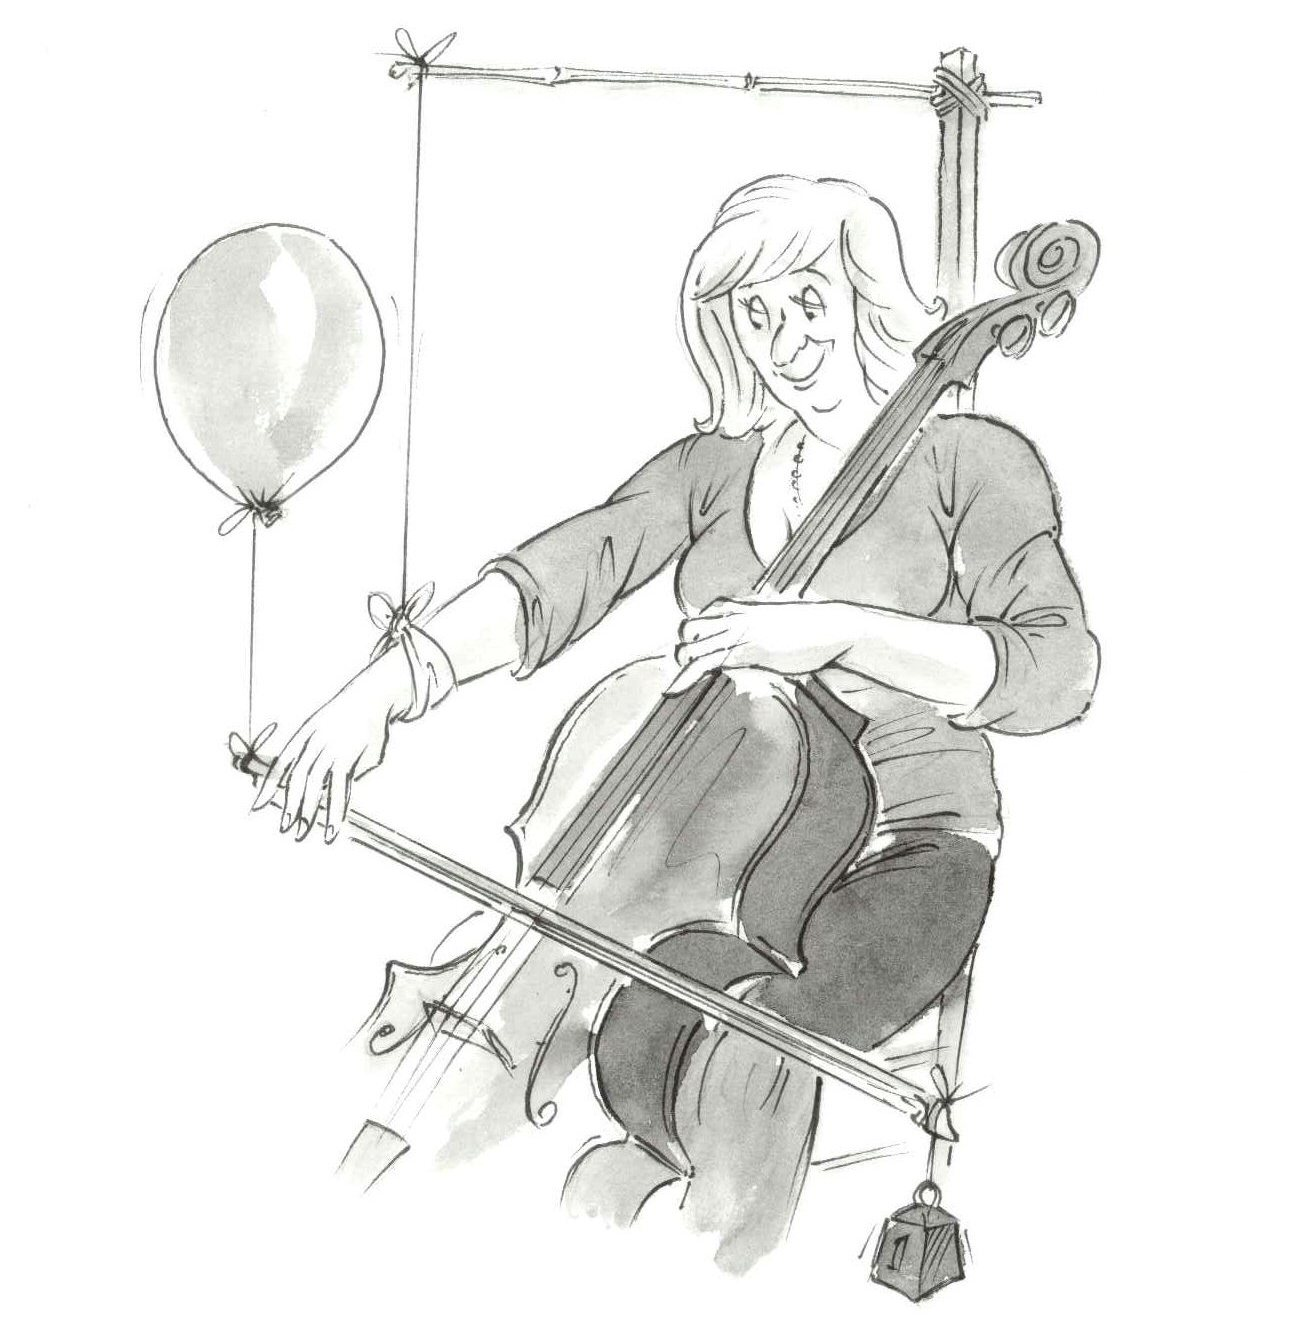 article library - right hand comfort - Cartoon of a lady playing with a balloon attached to her bow and her arm propped up